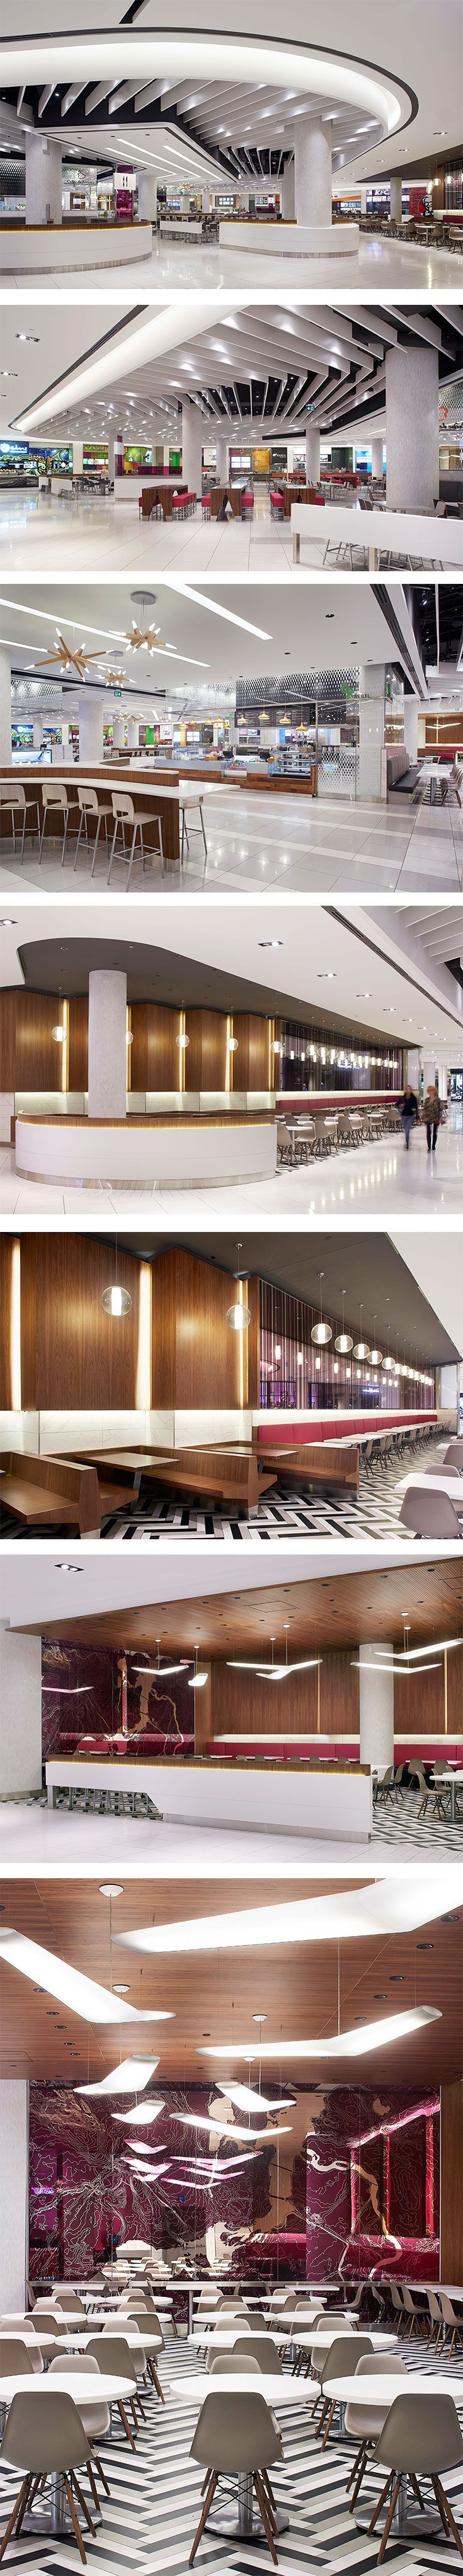 Dining Hall at Rideau Centre in Ottawa, ON - designed by GH+A (in collaboration with Le Groupe Archifin Inc.) | Food Courts | Pinterest | Centre, Hall and Food…